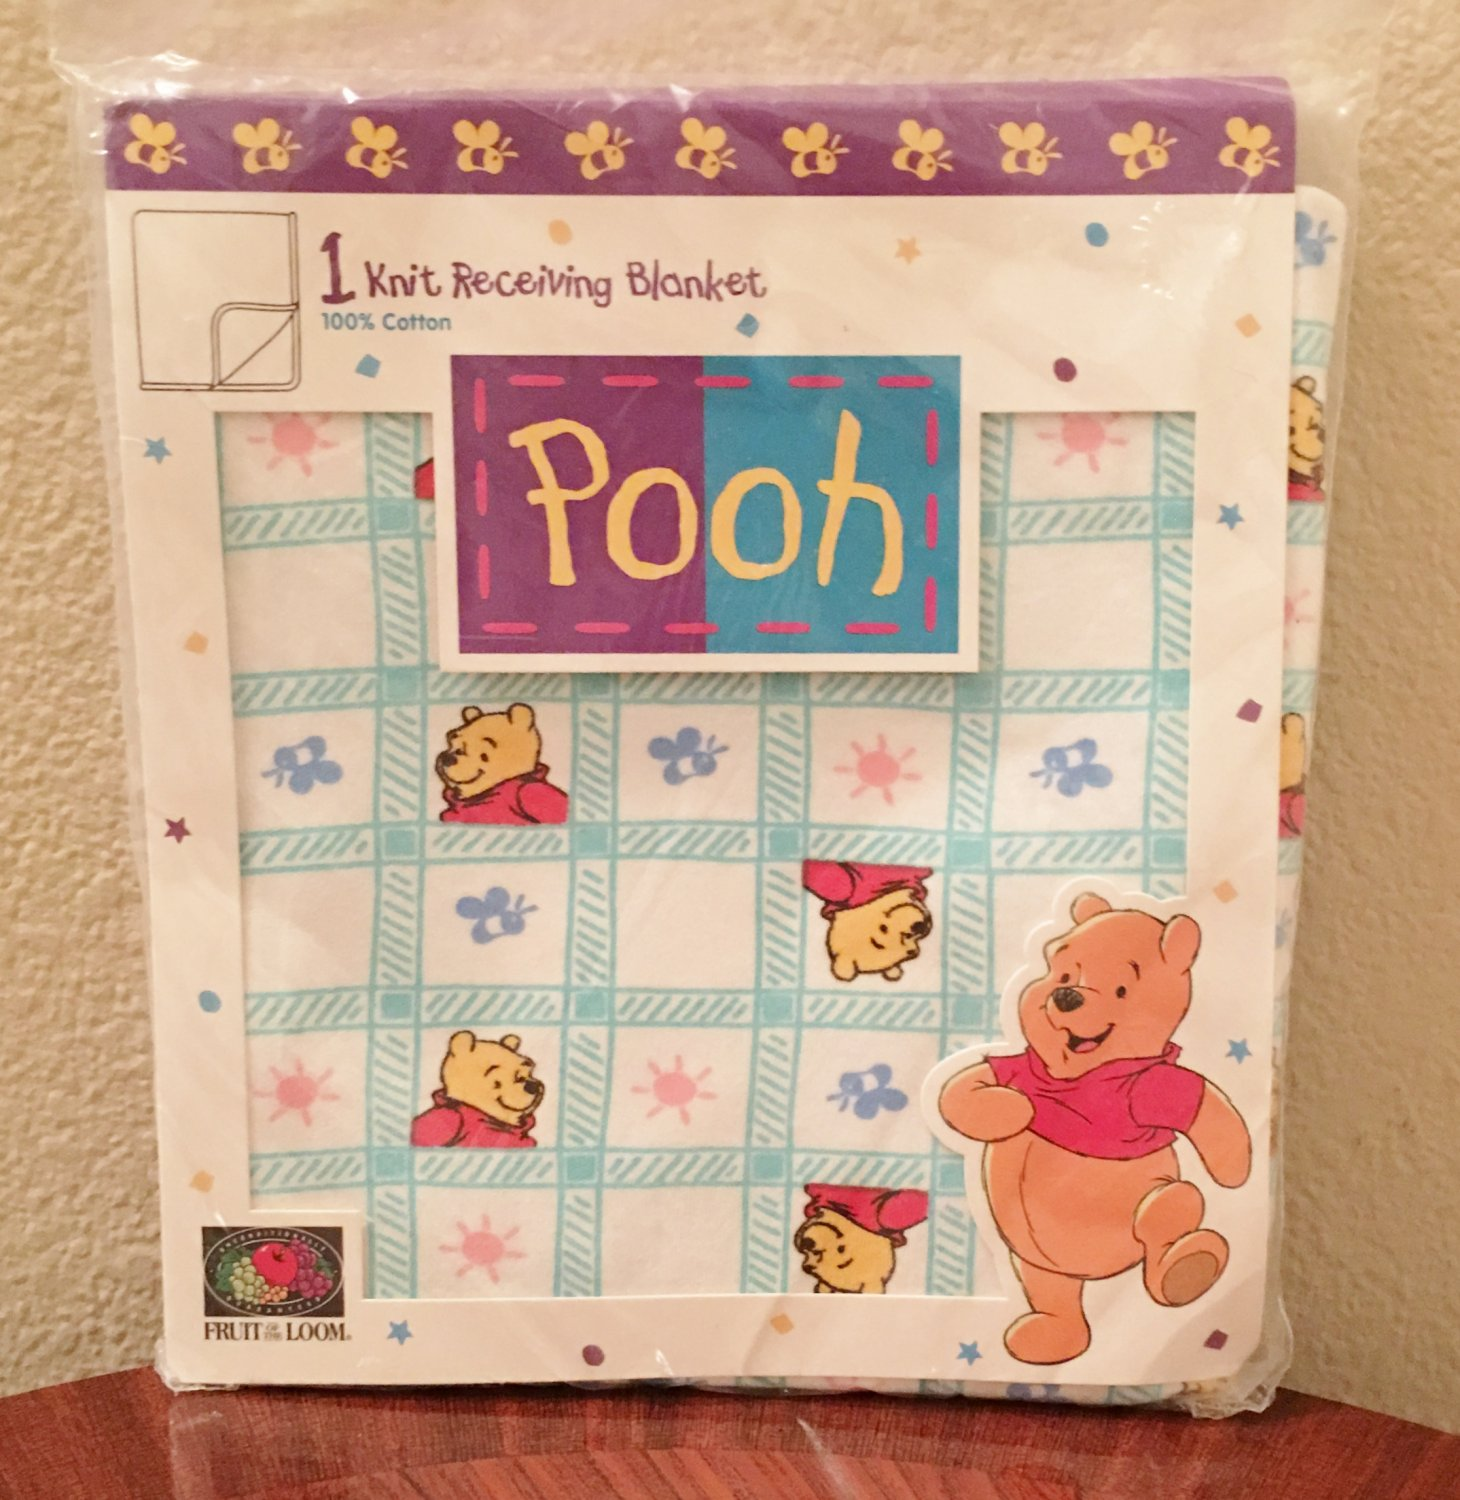 WINNIE the POOH RECEIVING BLANKET Cotton Knit Multicolor Baby Infant NEW